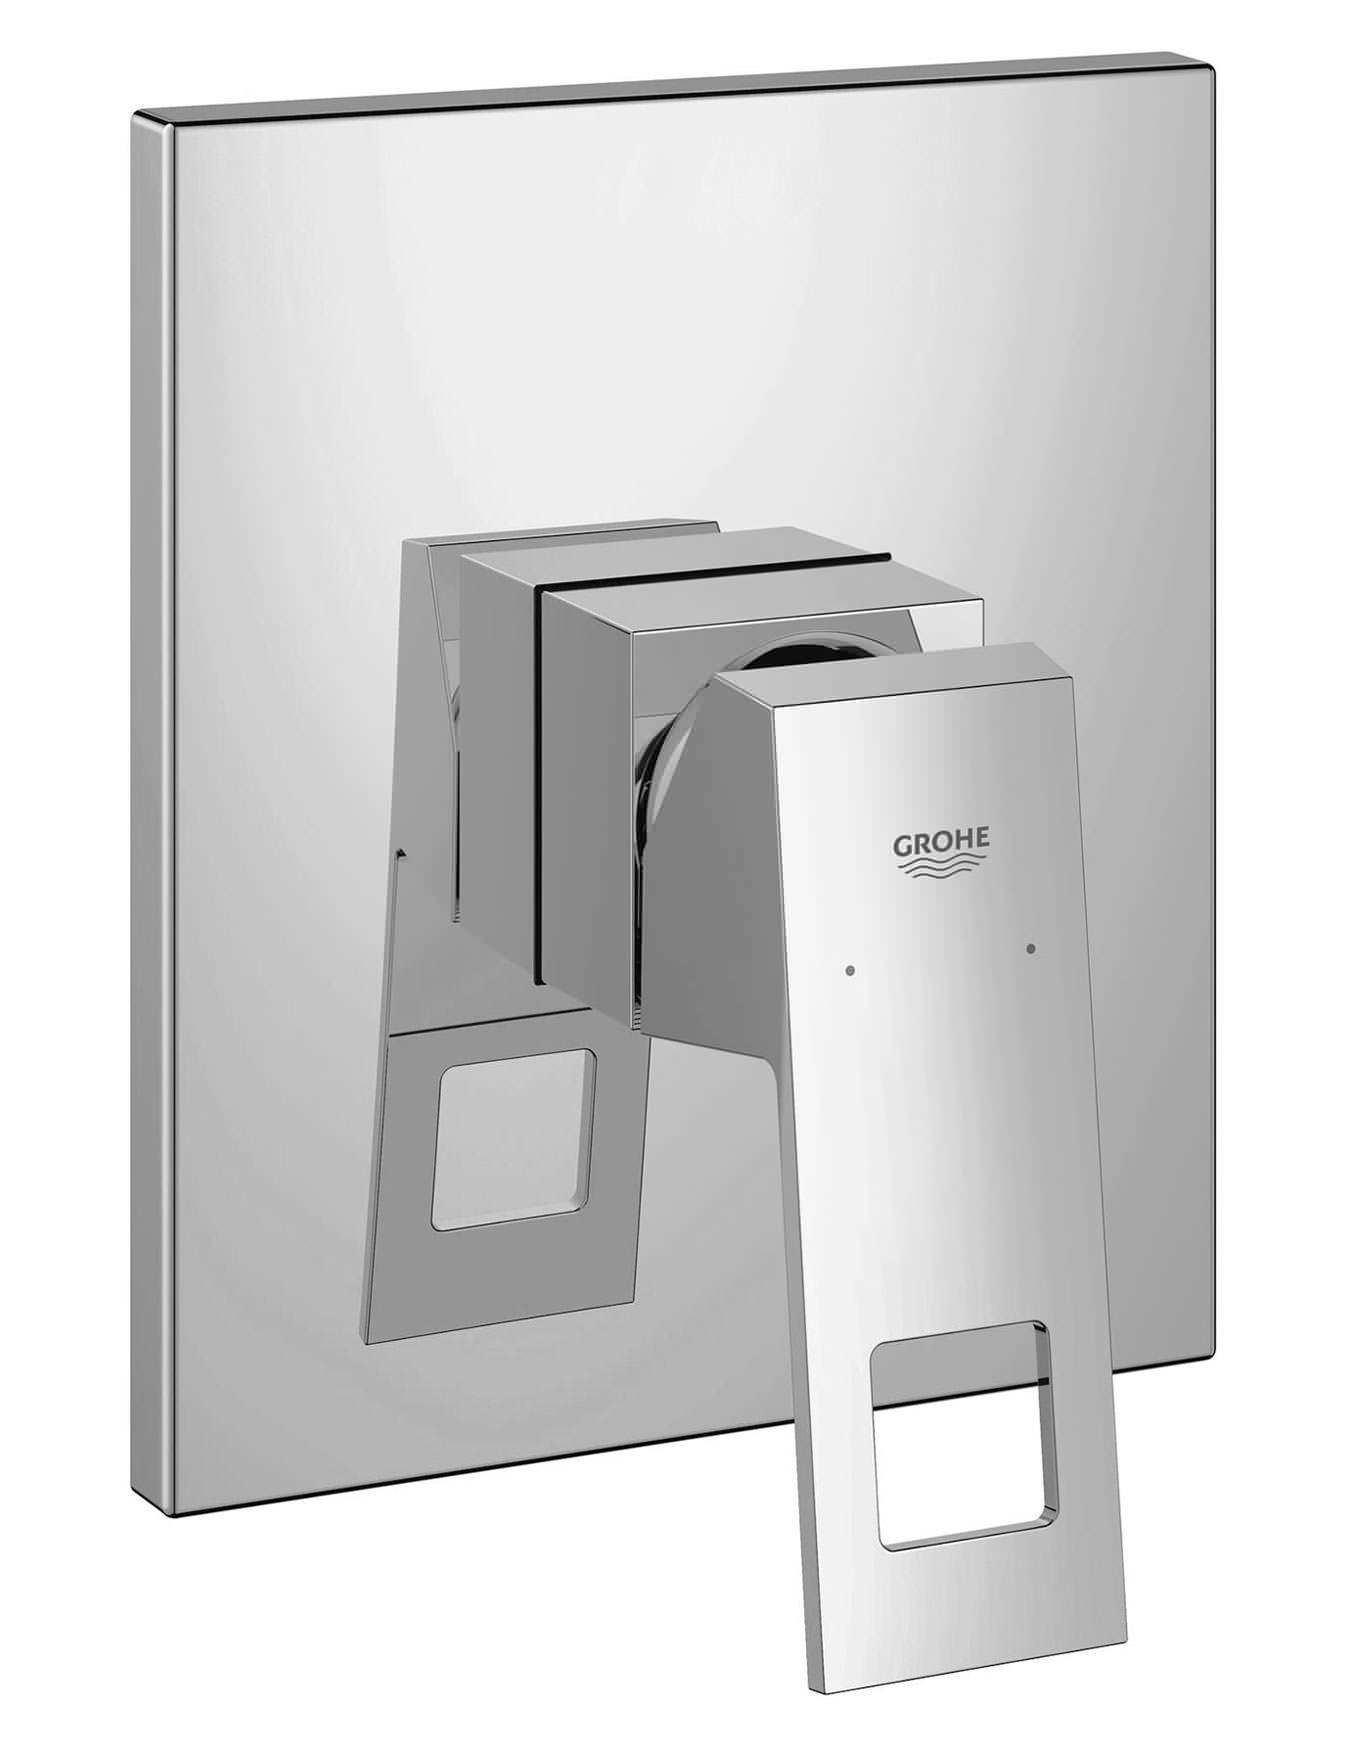 grohe shower mixer installation manual